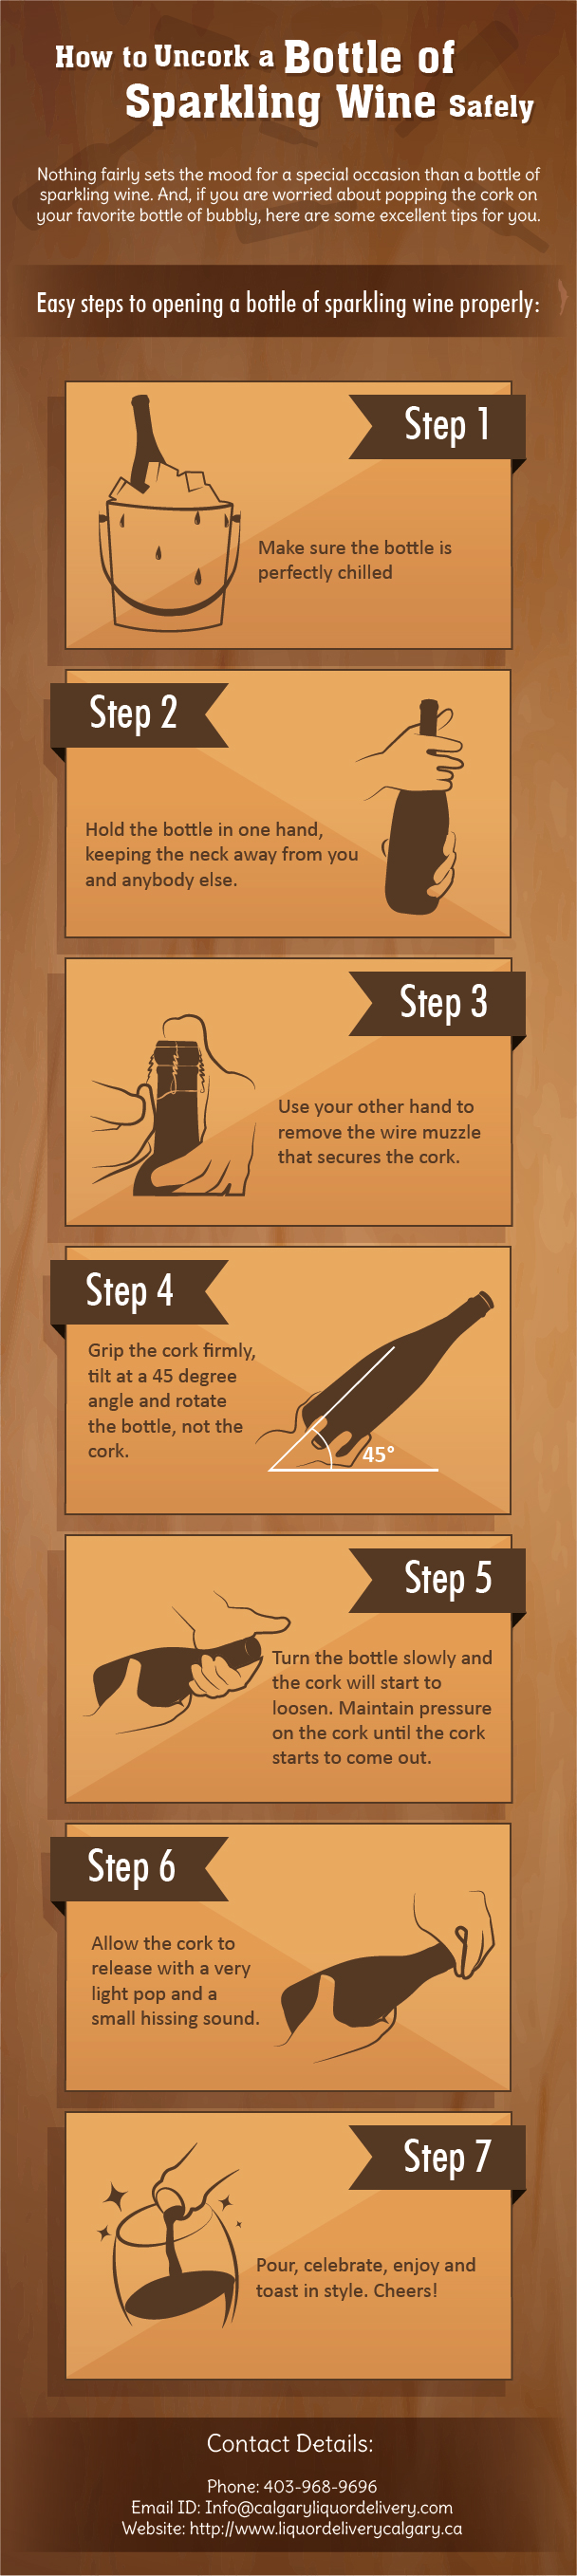 How to Uncork a Bottle of Sparkling Wine Safely